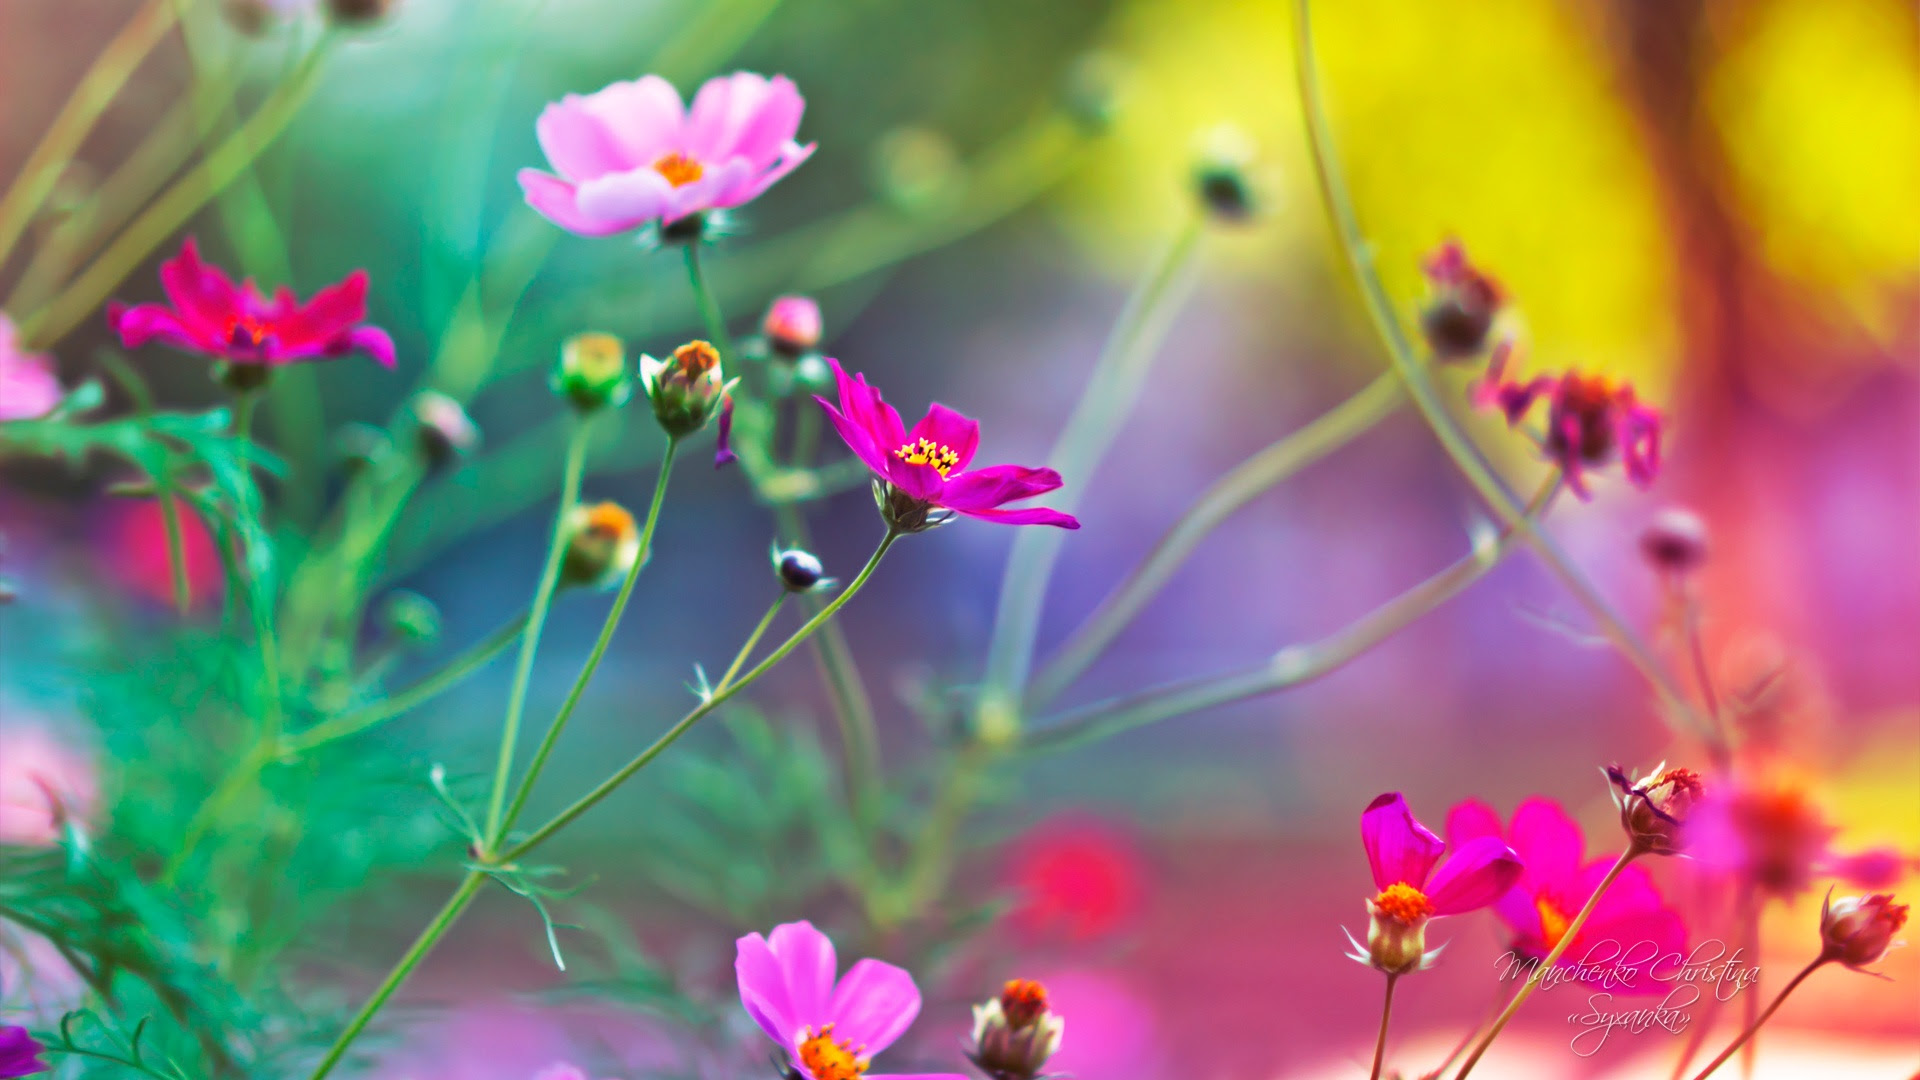 Flowers Wallpaper Hd 1080p Free Download For Mobile